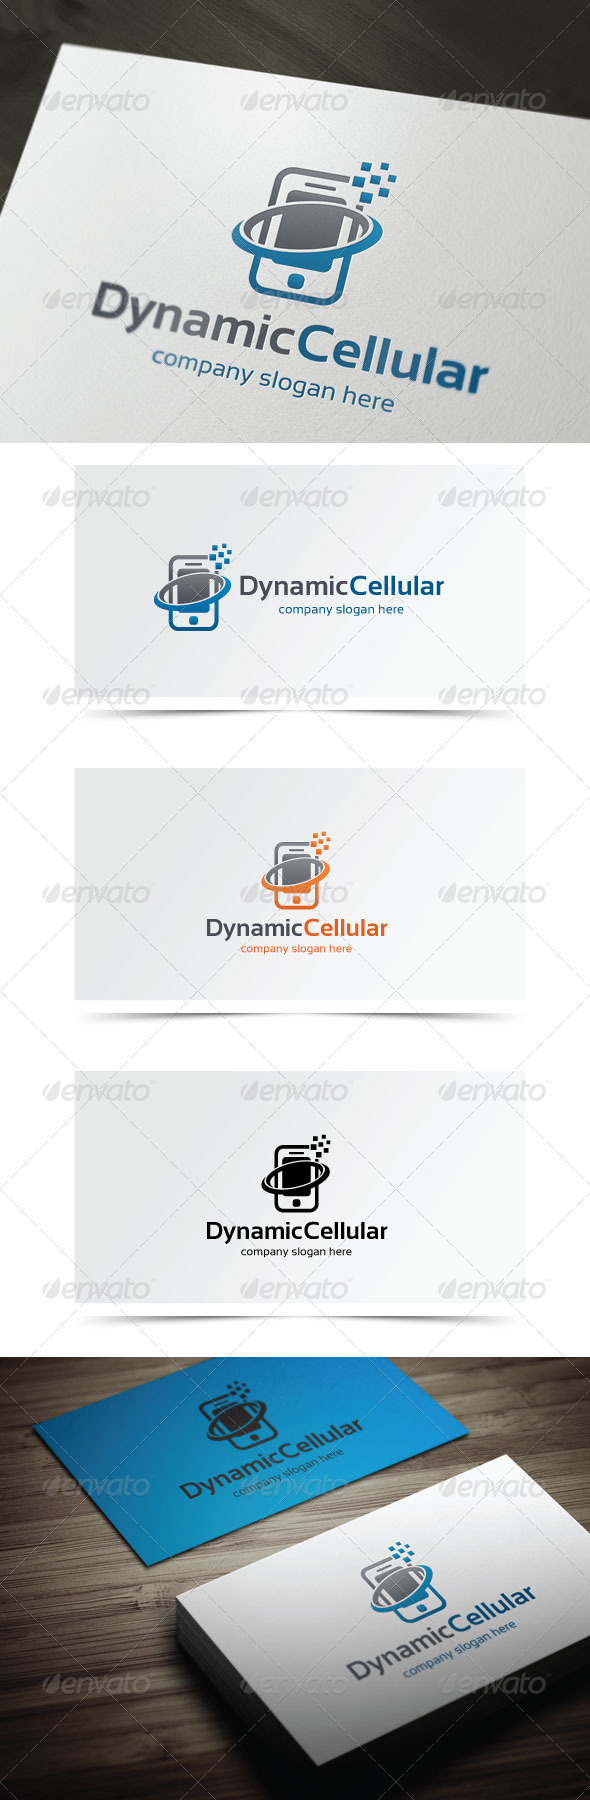 Dynamic Cellular - Objects Logo Templates